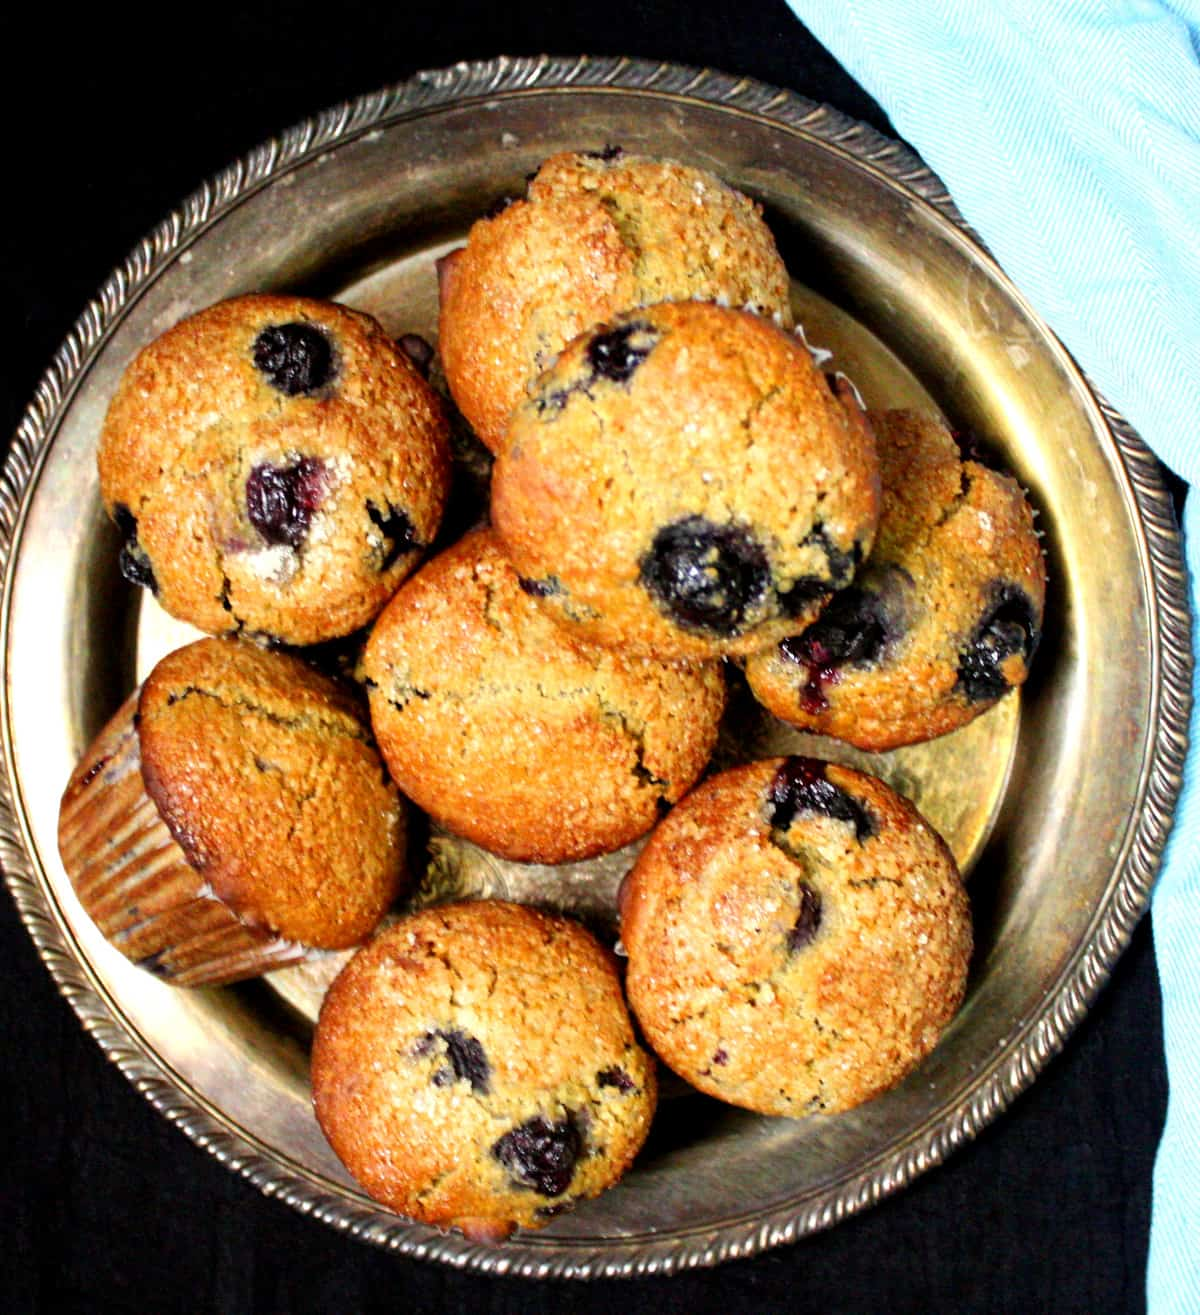 Overhead shot of a silver serving plate with sourdough muffins with blueberries.